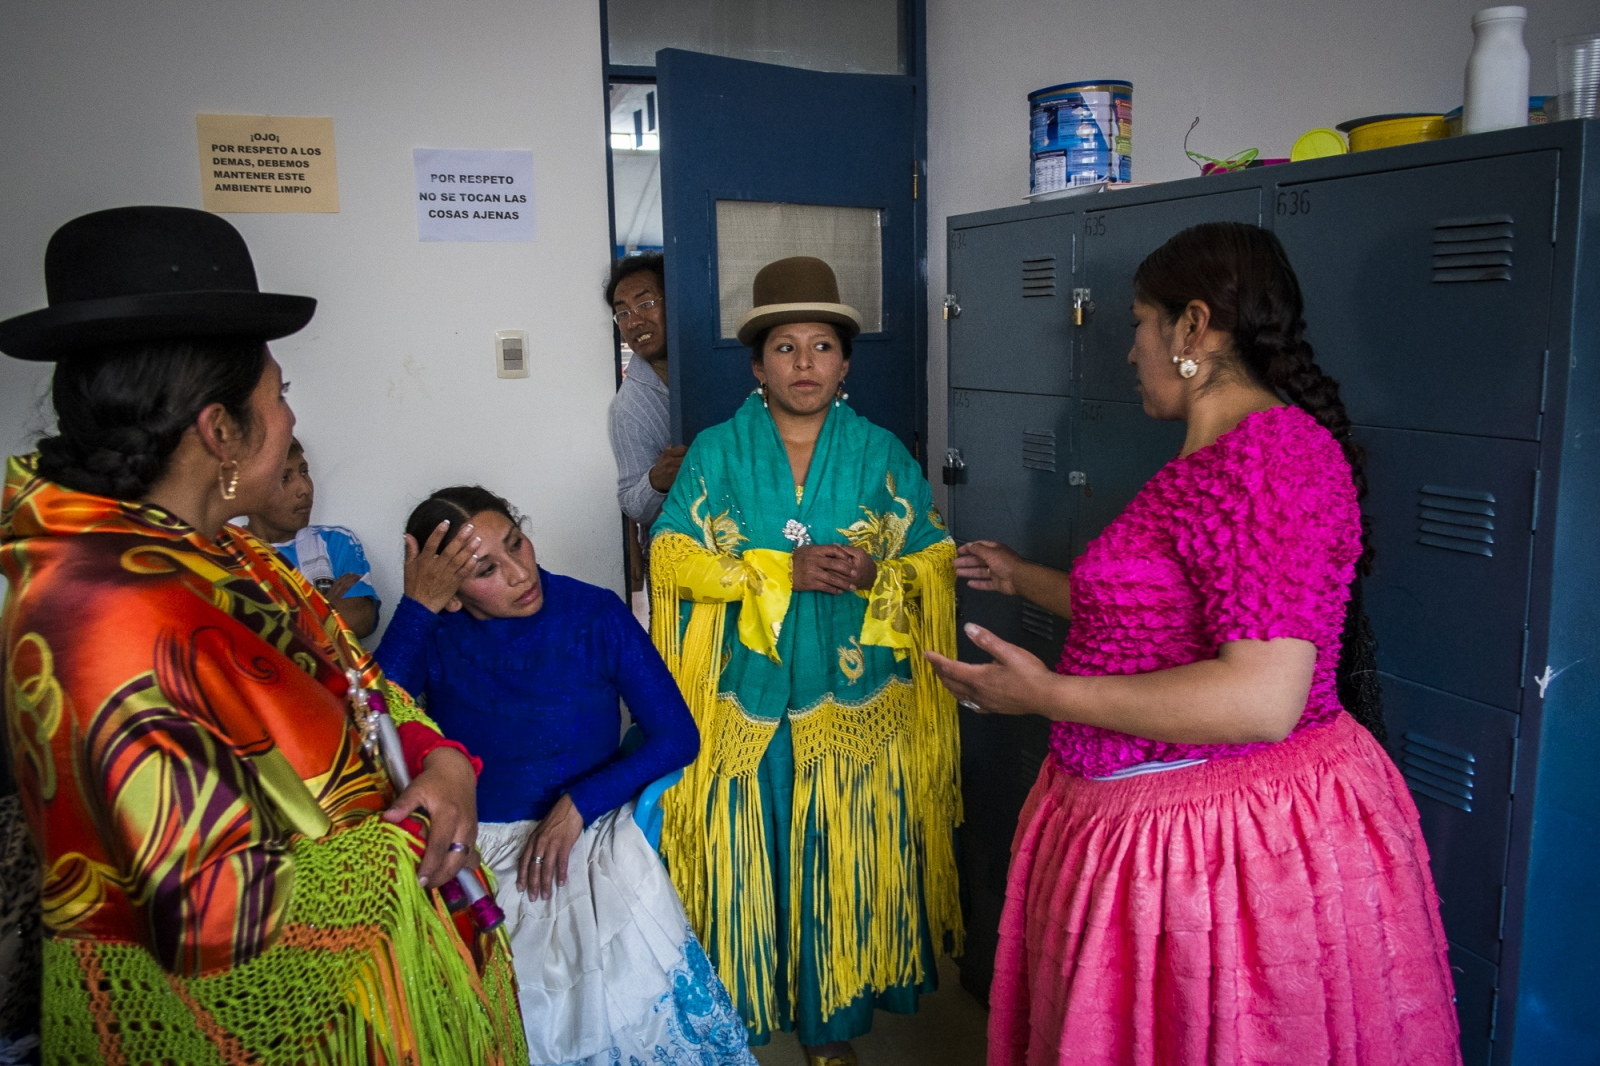 Cholitas meet up on the dressing room before the match so they can coordinate the order of fights and some of the sequences. The Wrestling Cholitas fight every Sunday on the 12th October Complex in El Alto. At times they do exhibition fights in other parts of La Paz and Bolivia to promote the sport.